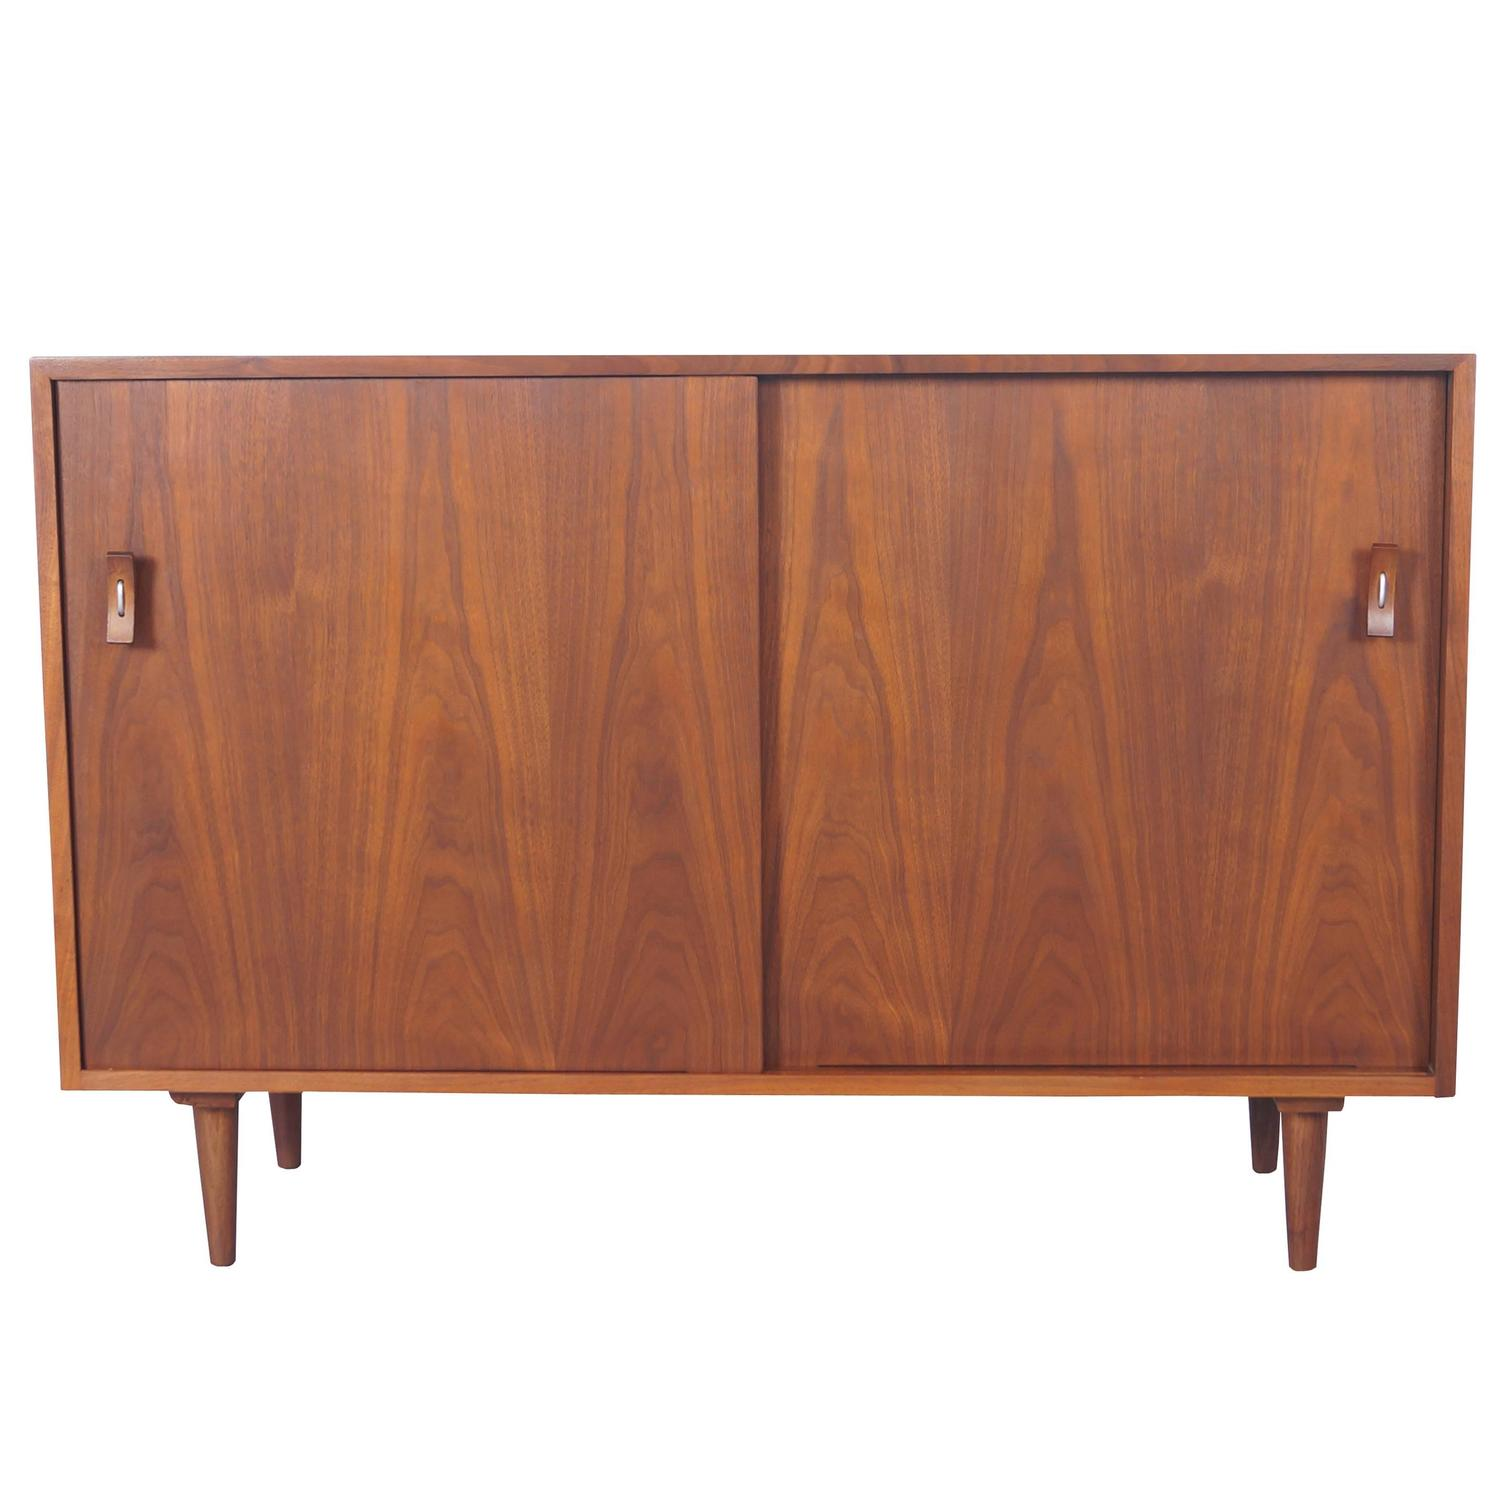 vintage walnut sideboard by stanley young for sale at 1stdibs. Black Bedroom Furniture Sets. Home Design Ideas